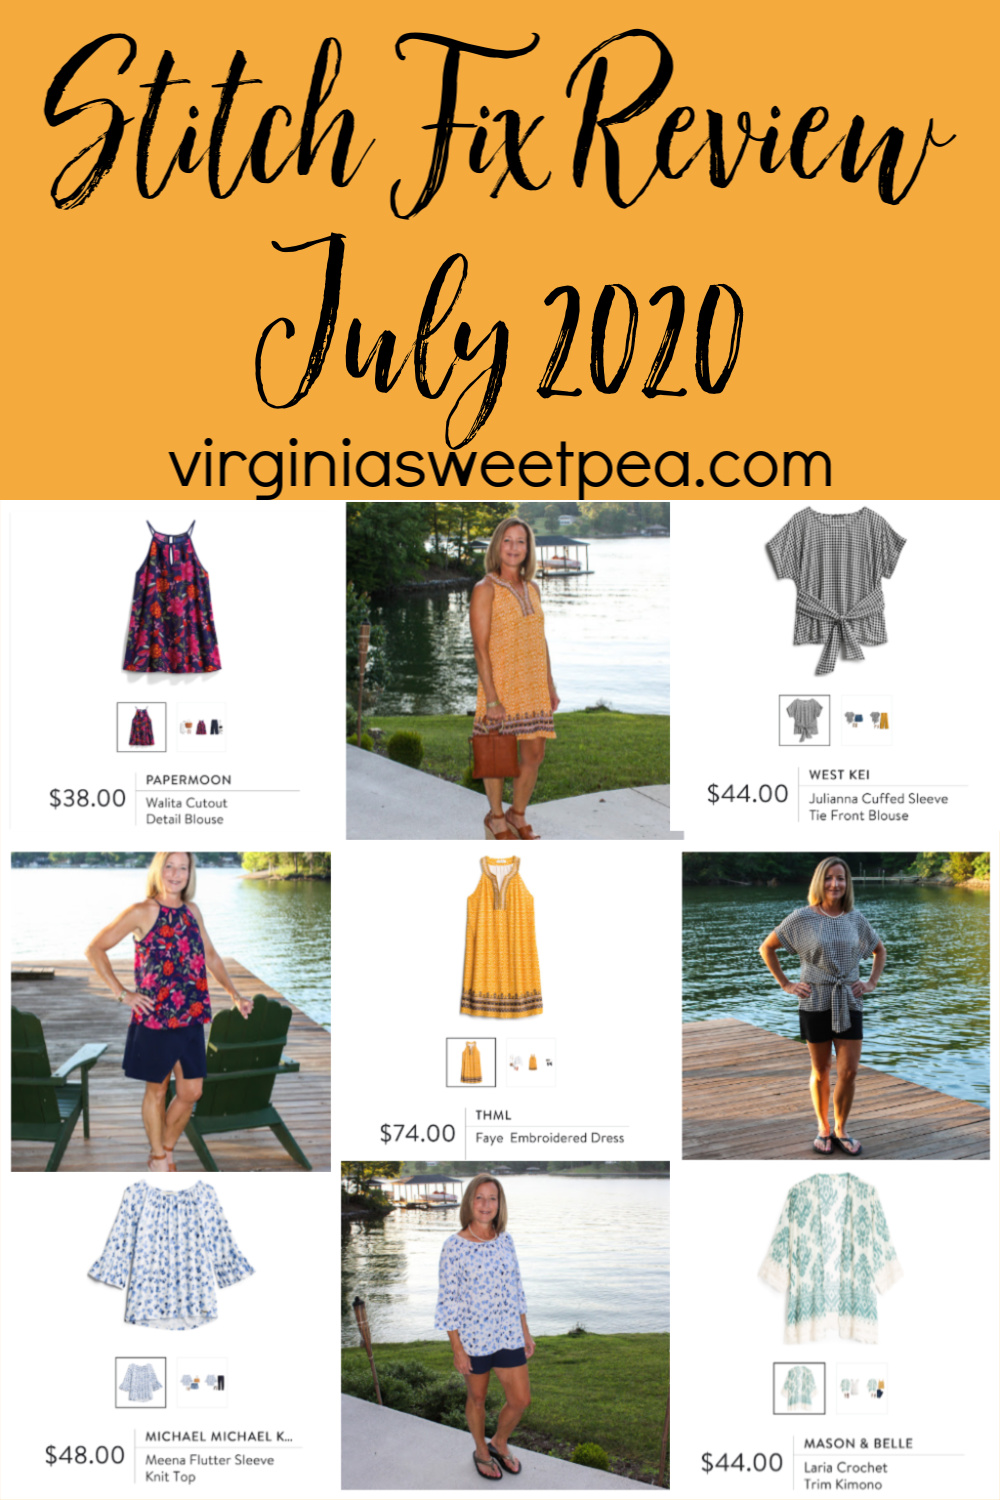 Stitch Fix Review for July 2020 - See summer fashions picked by my stylist to try for July.  #stitchfix #stitchfixreview via @spaula